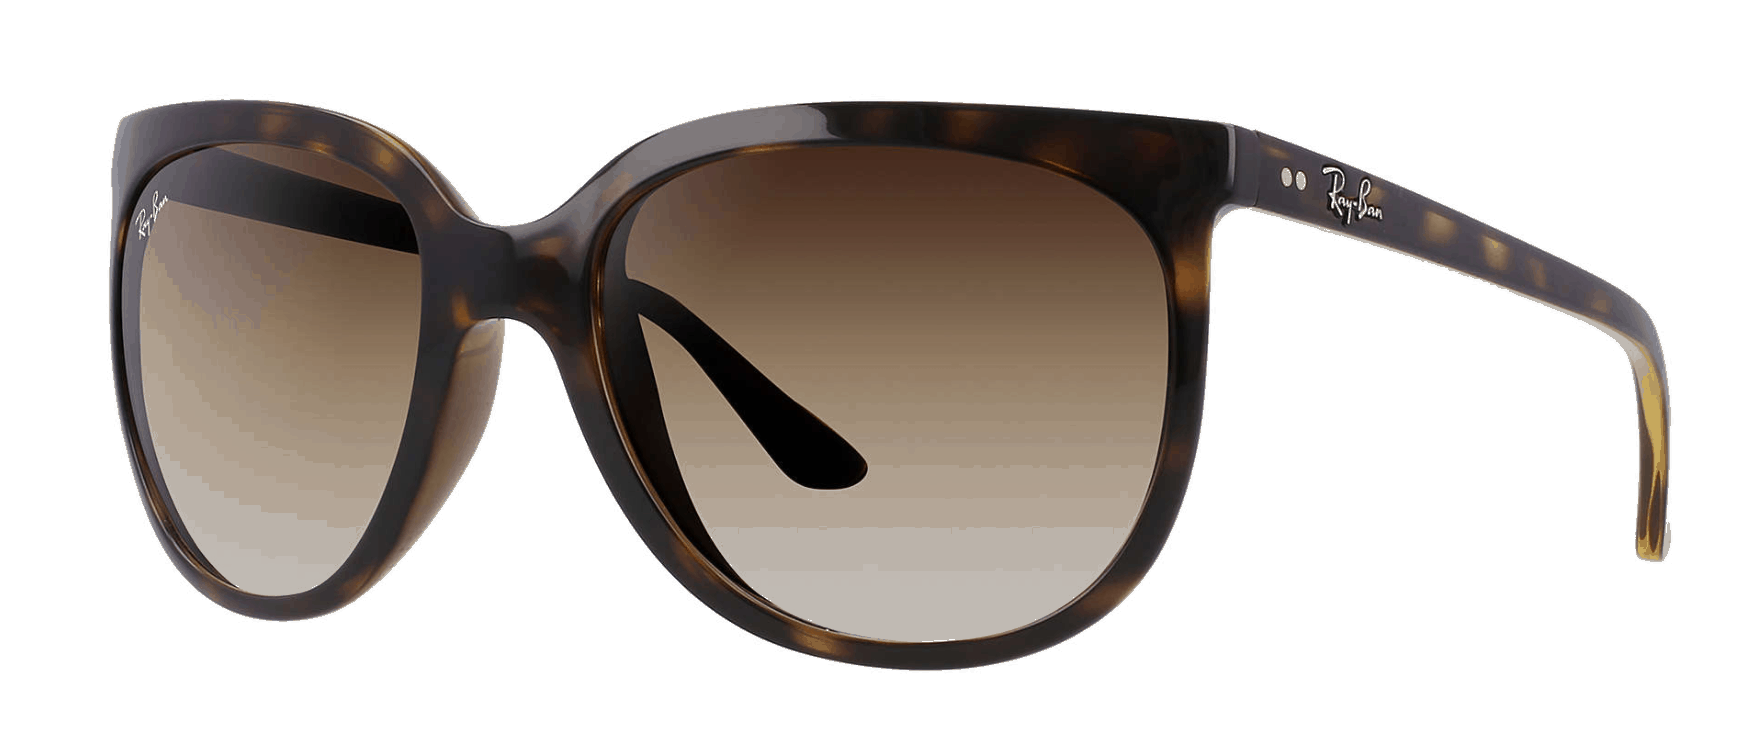 Ray-Ban Cats 1000 in light brown gradient